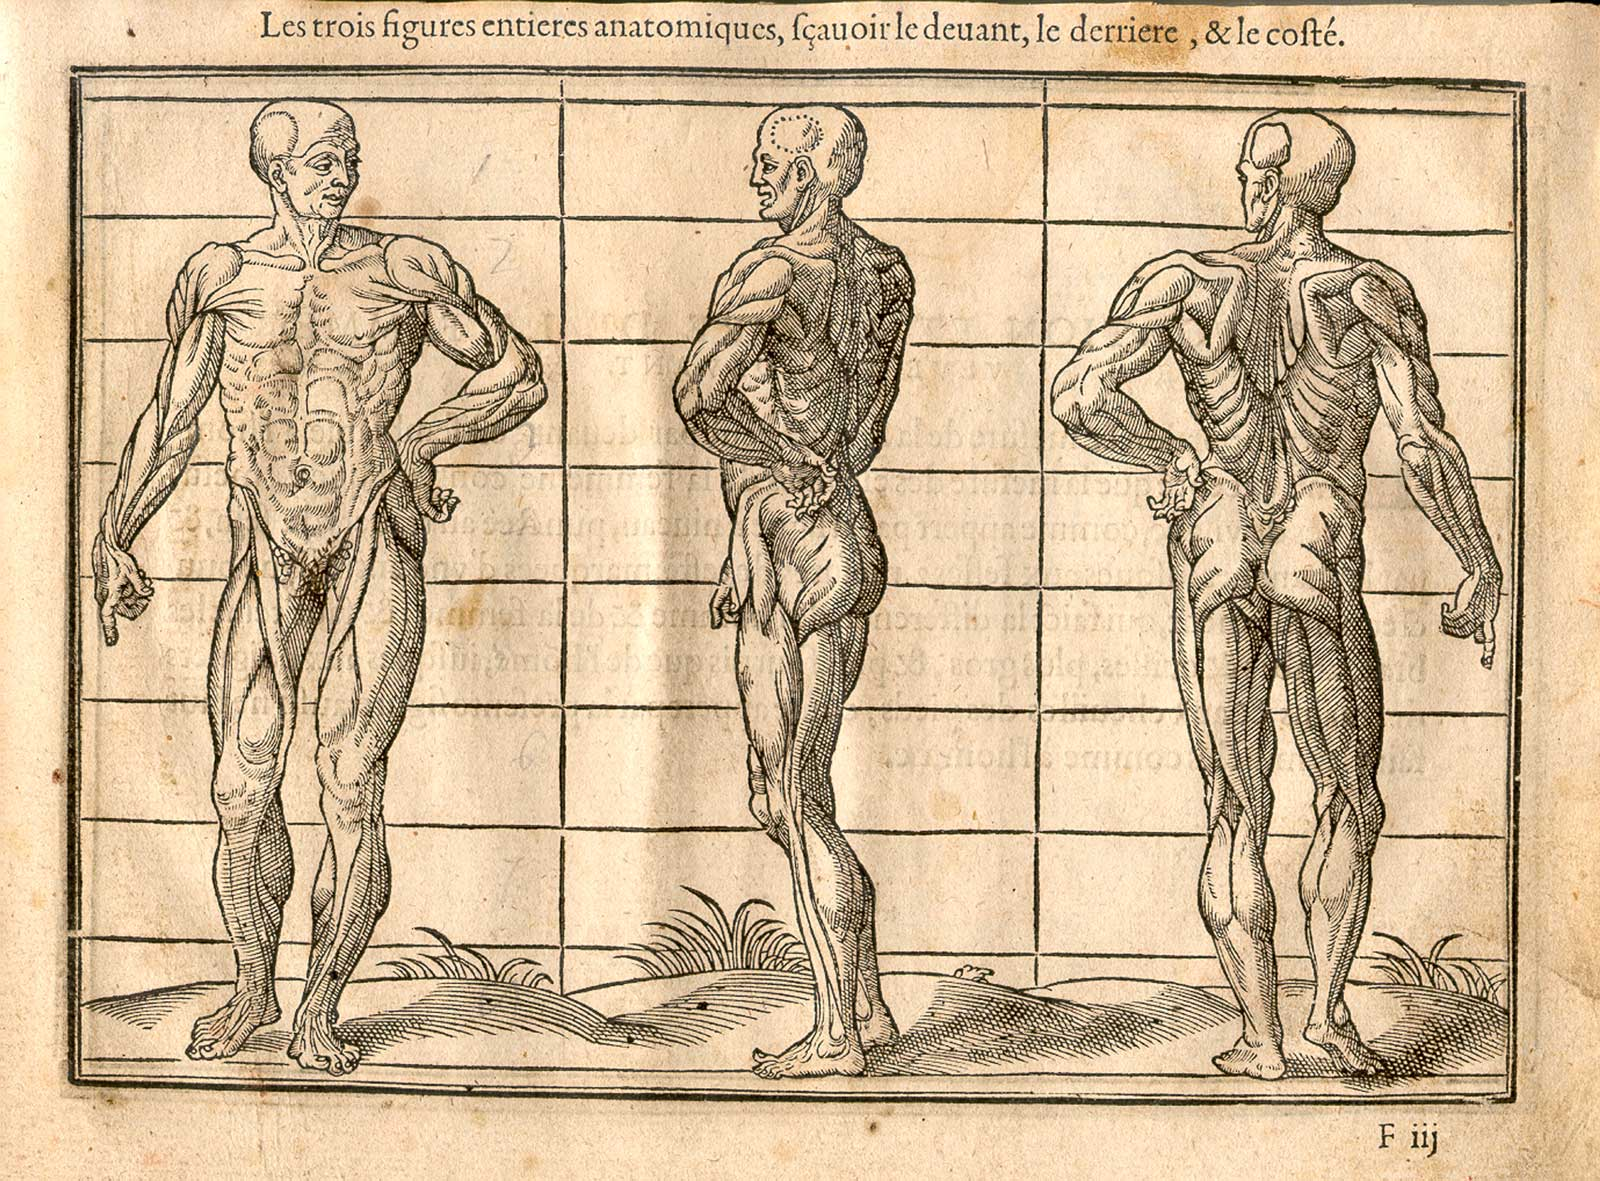 The history of anatomy 1123568 - follow4more.info